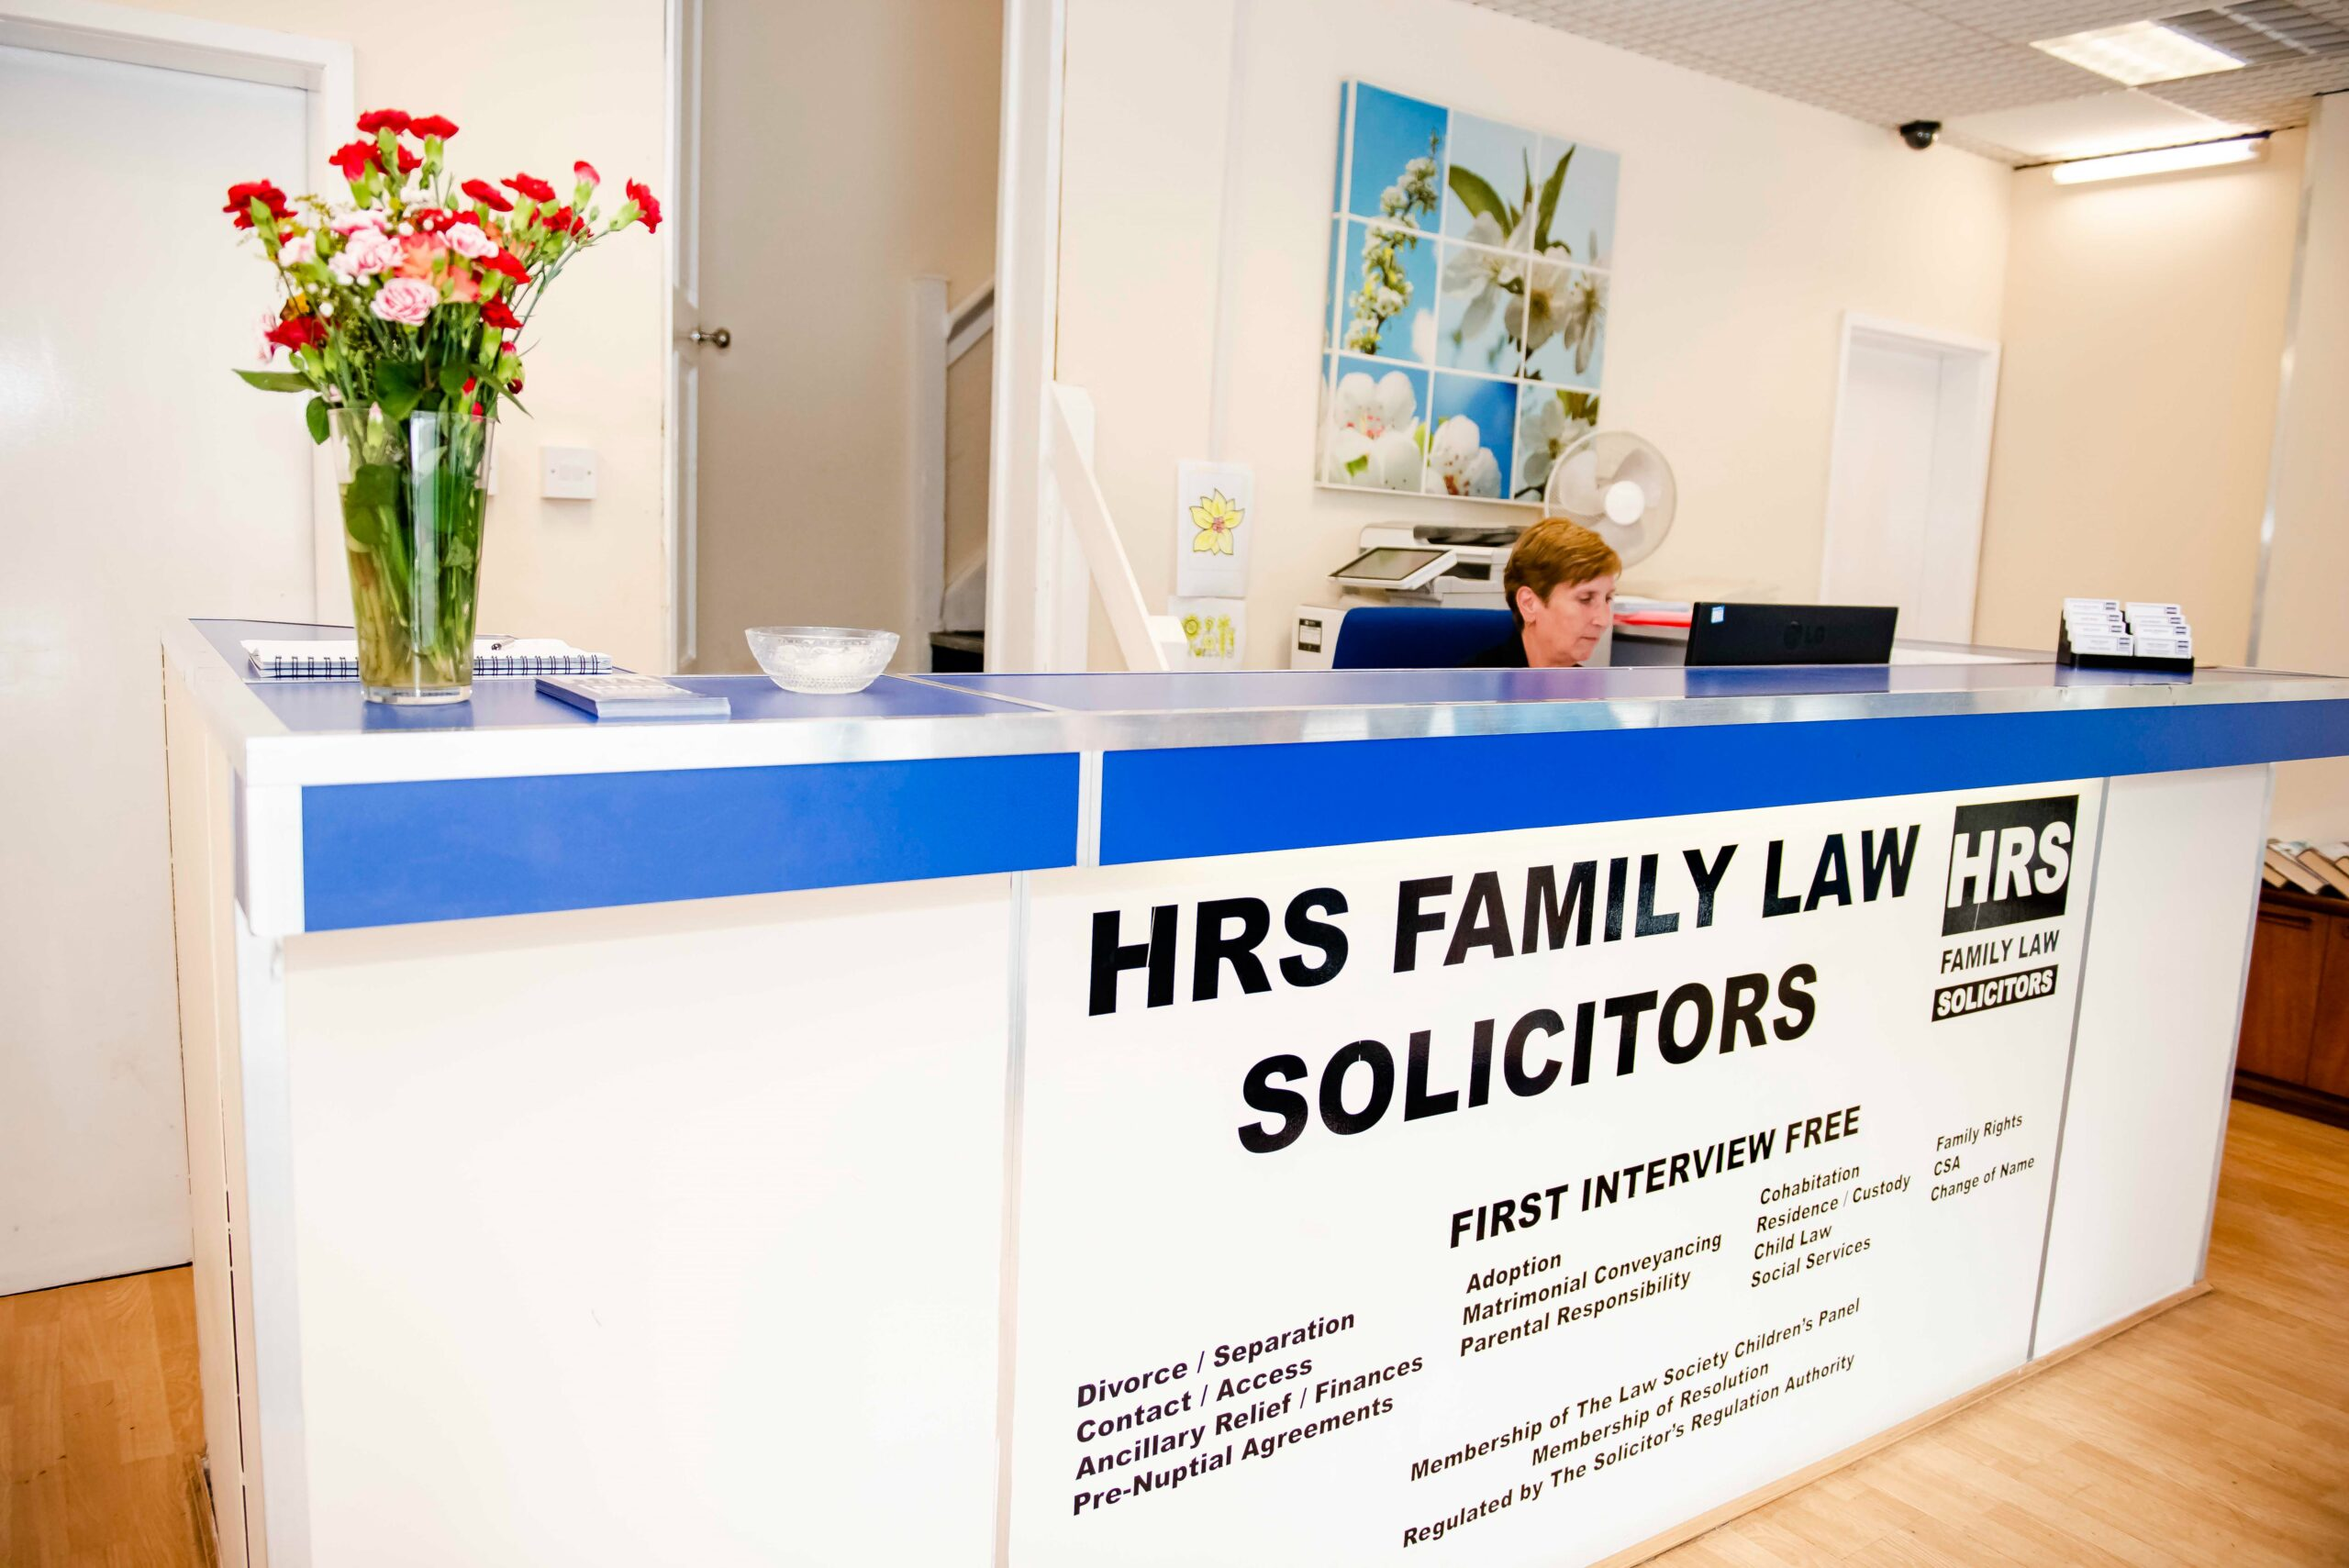 Family Law Solicitors in Dudley